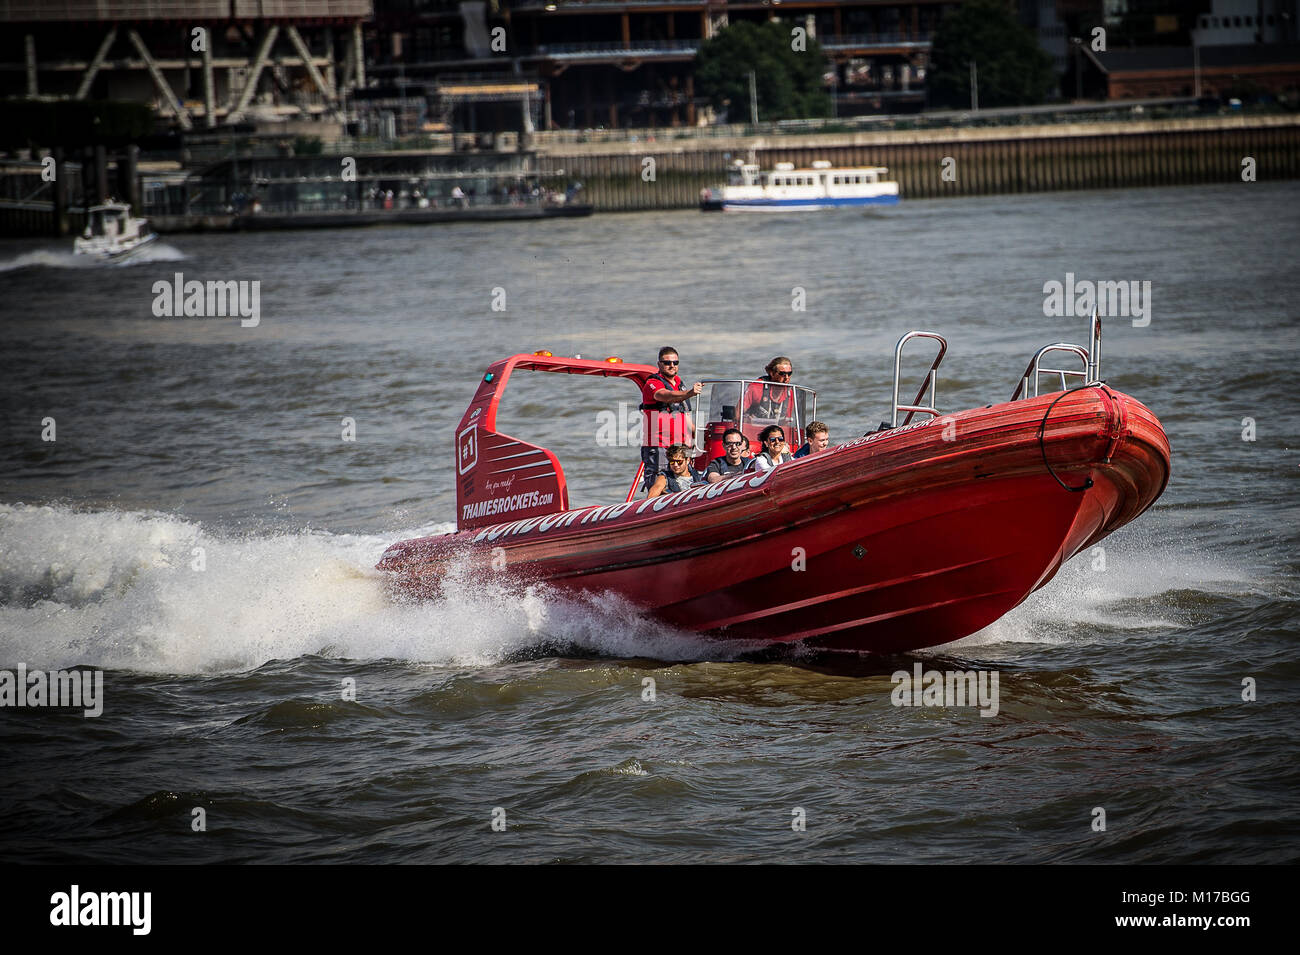 Tourists enjoy a high speed white knuckle ride on the River Thames in a RIB (Rigid Inflatable Boat) - Stock Image